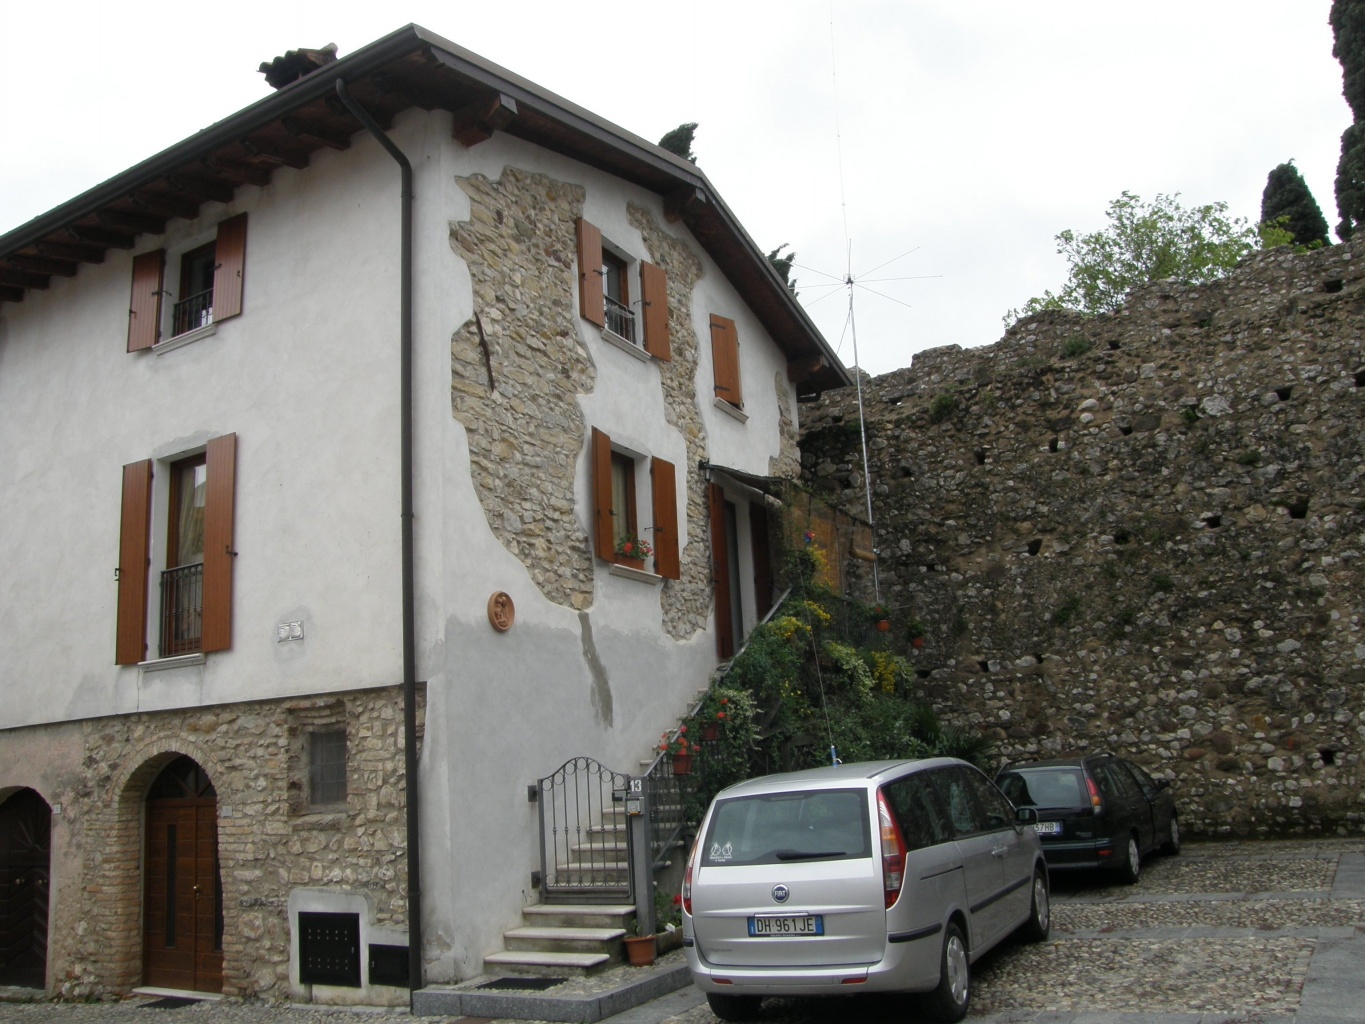 House for 20 euro – to buy or not to buy